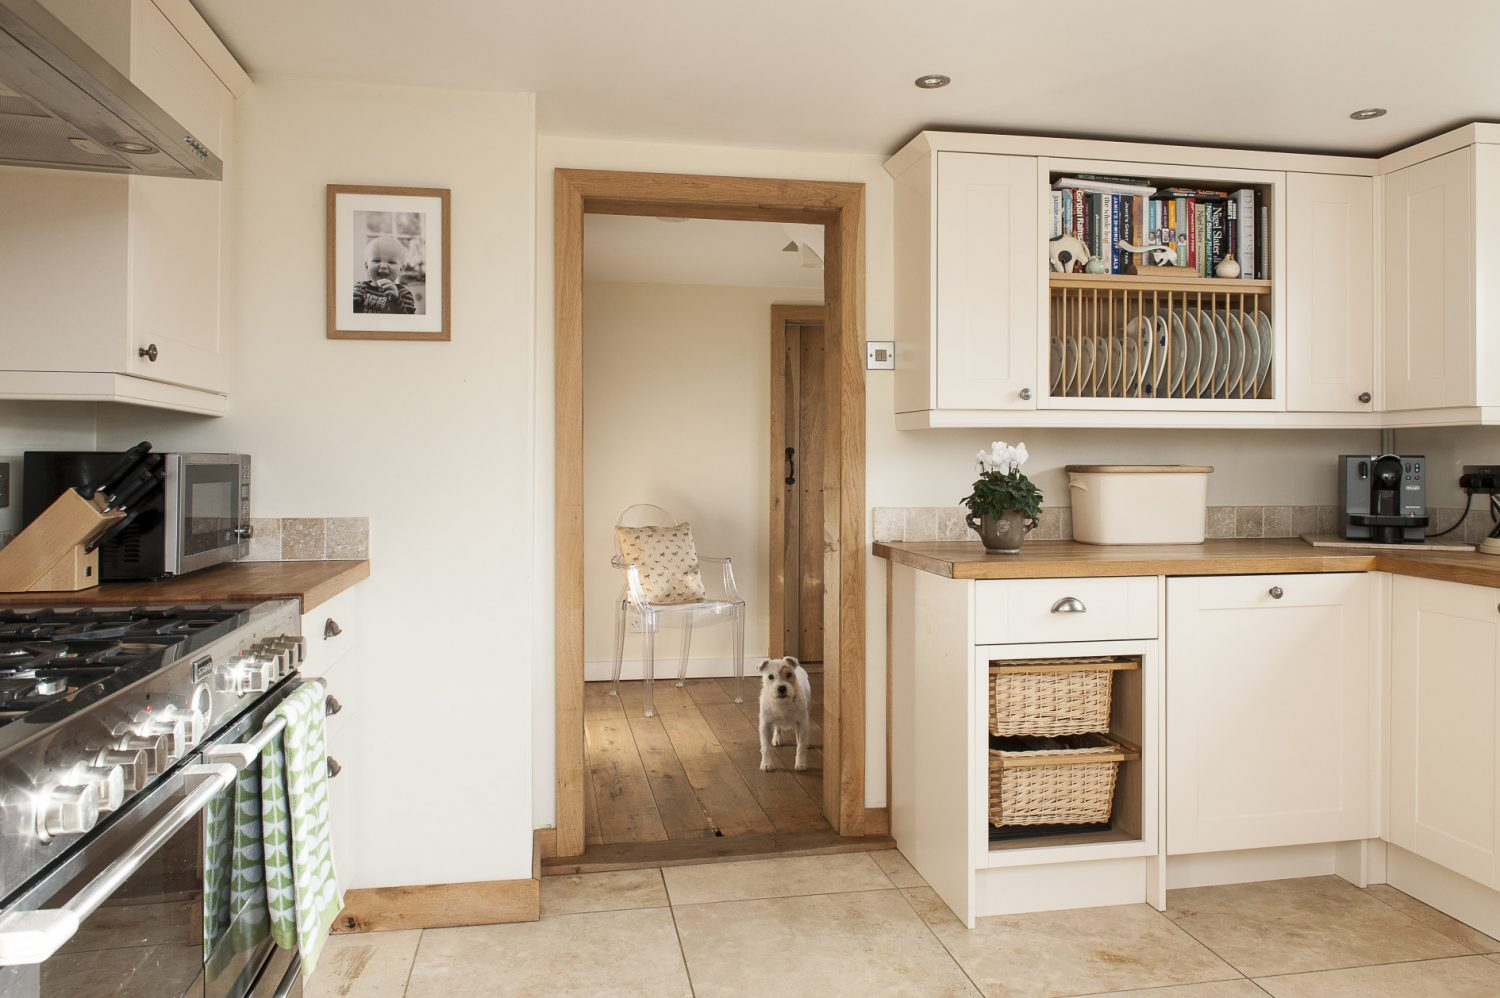 Holly and Chris sourced their kitchen from Howdens in Hawkhurst